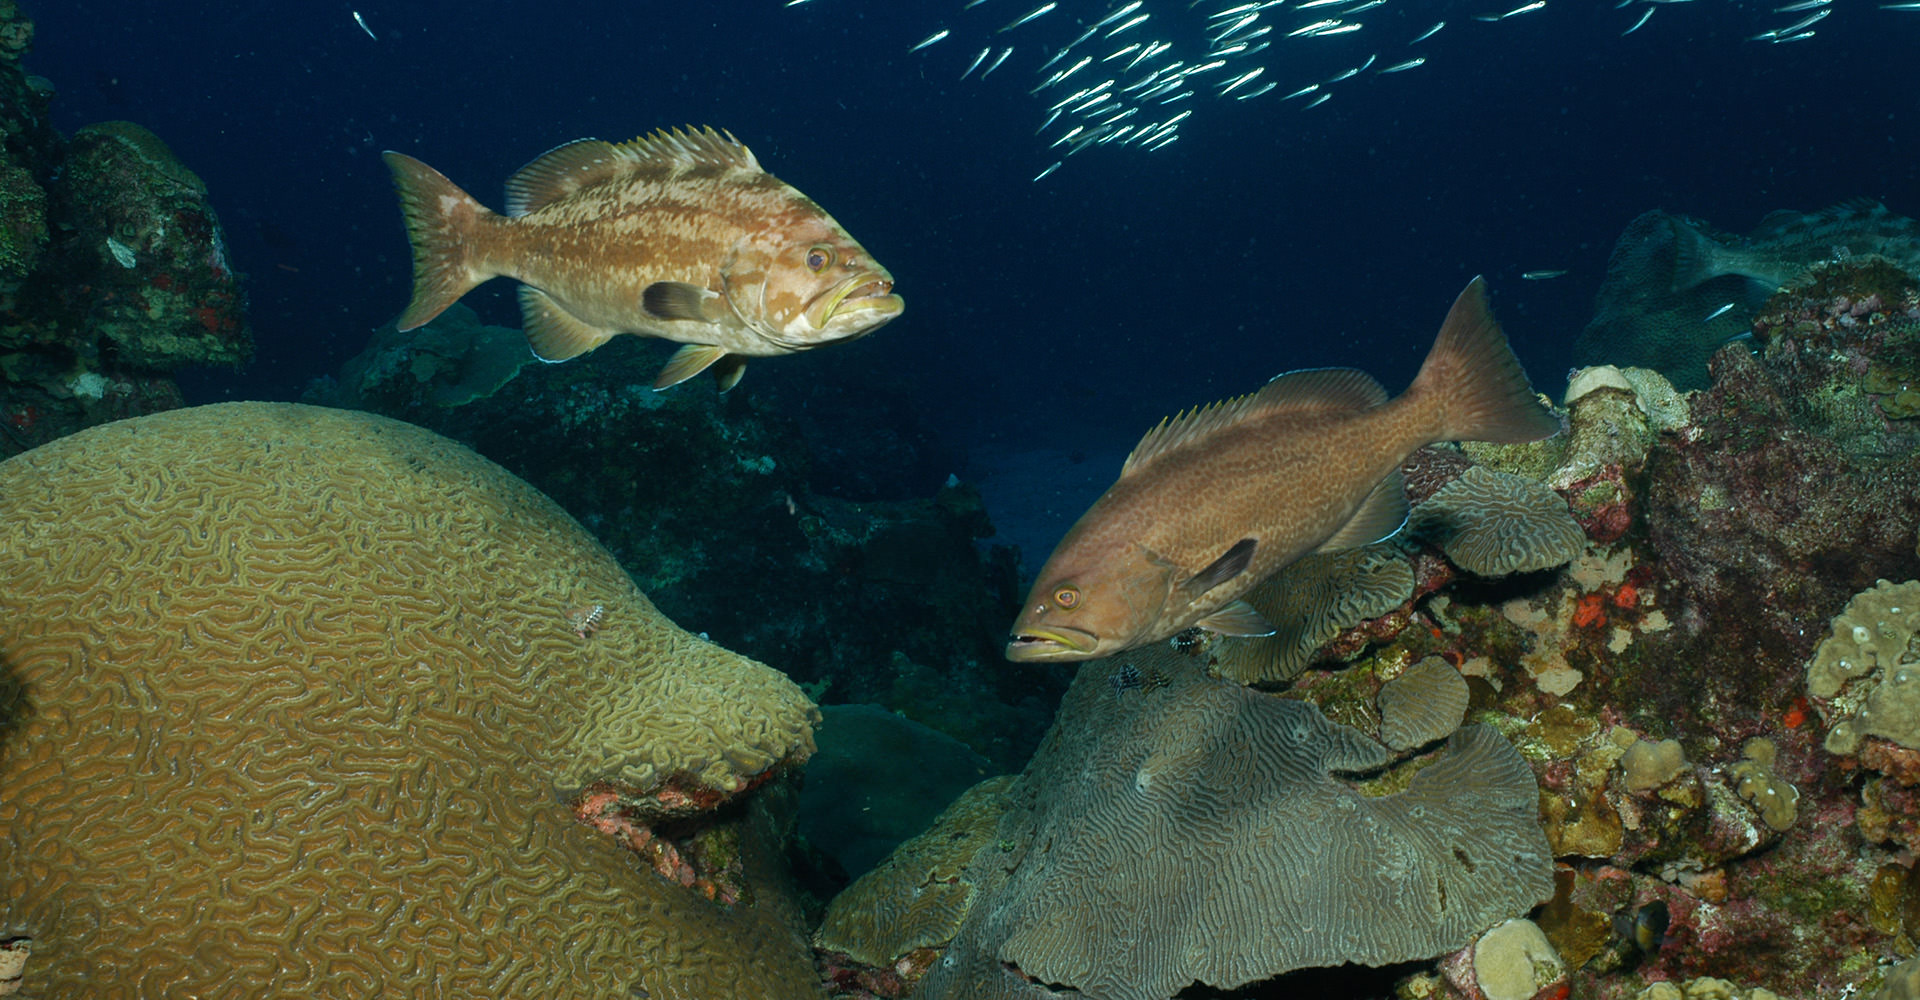 Two yellowmouth groupers facing each other on the reef